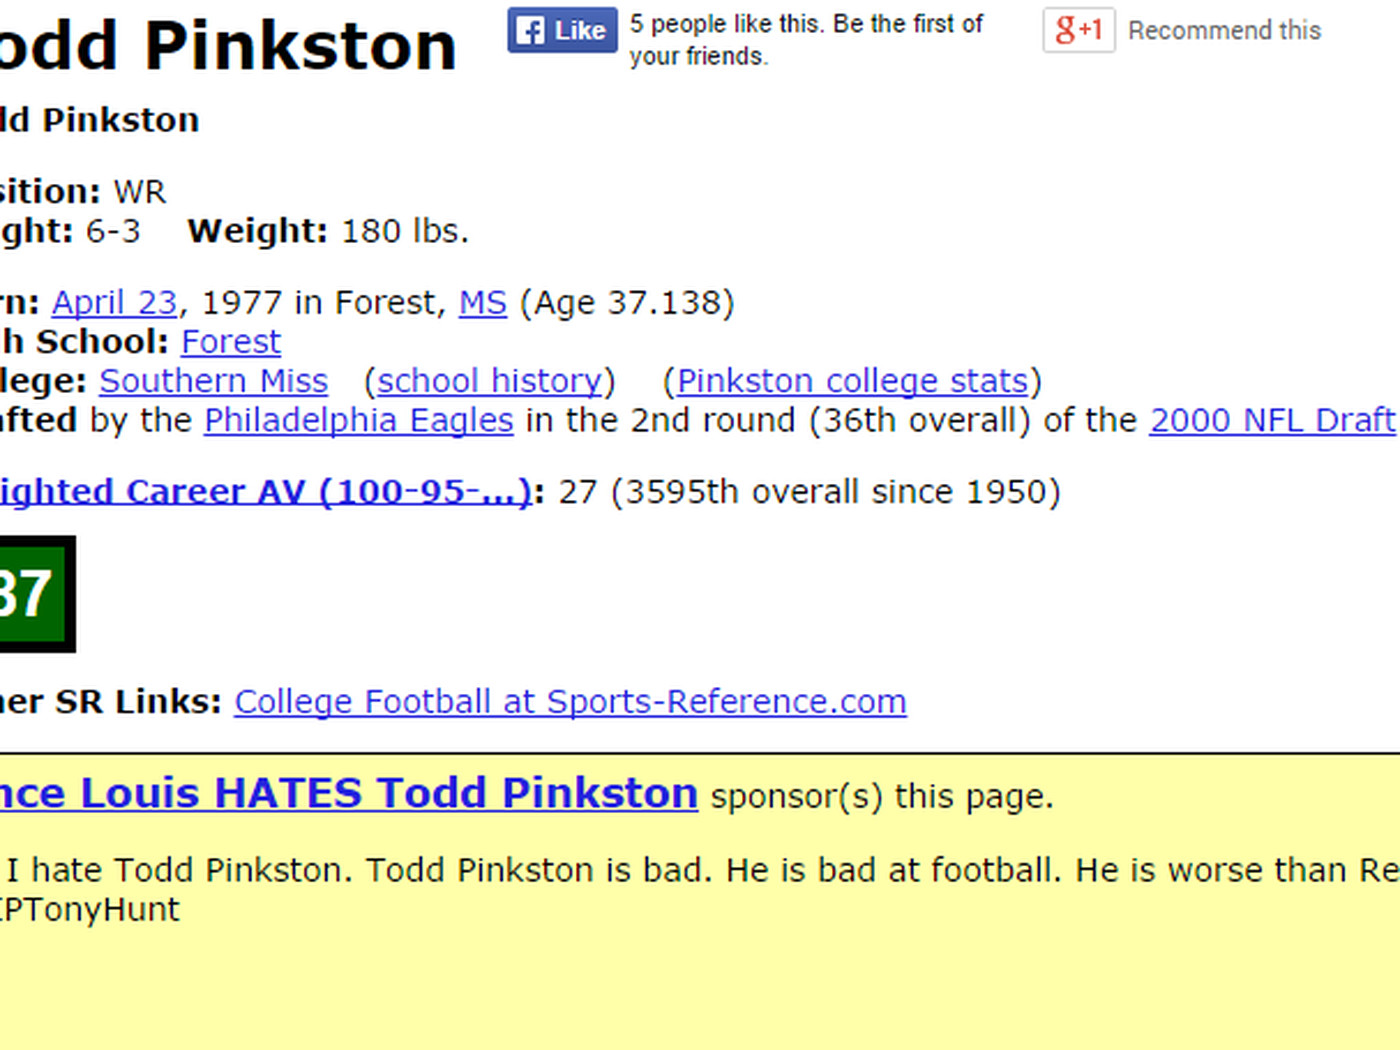 Someone Hates Todd Pinkston So Much They Sponsored His Pro Football